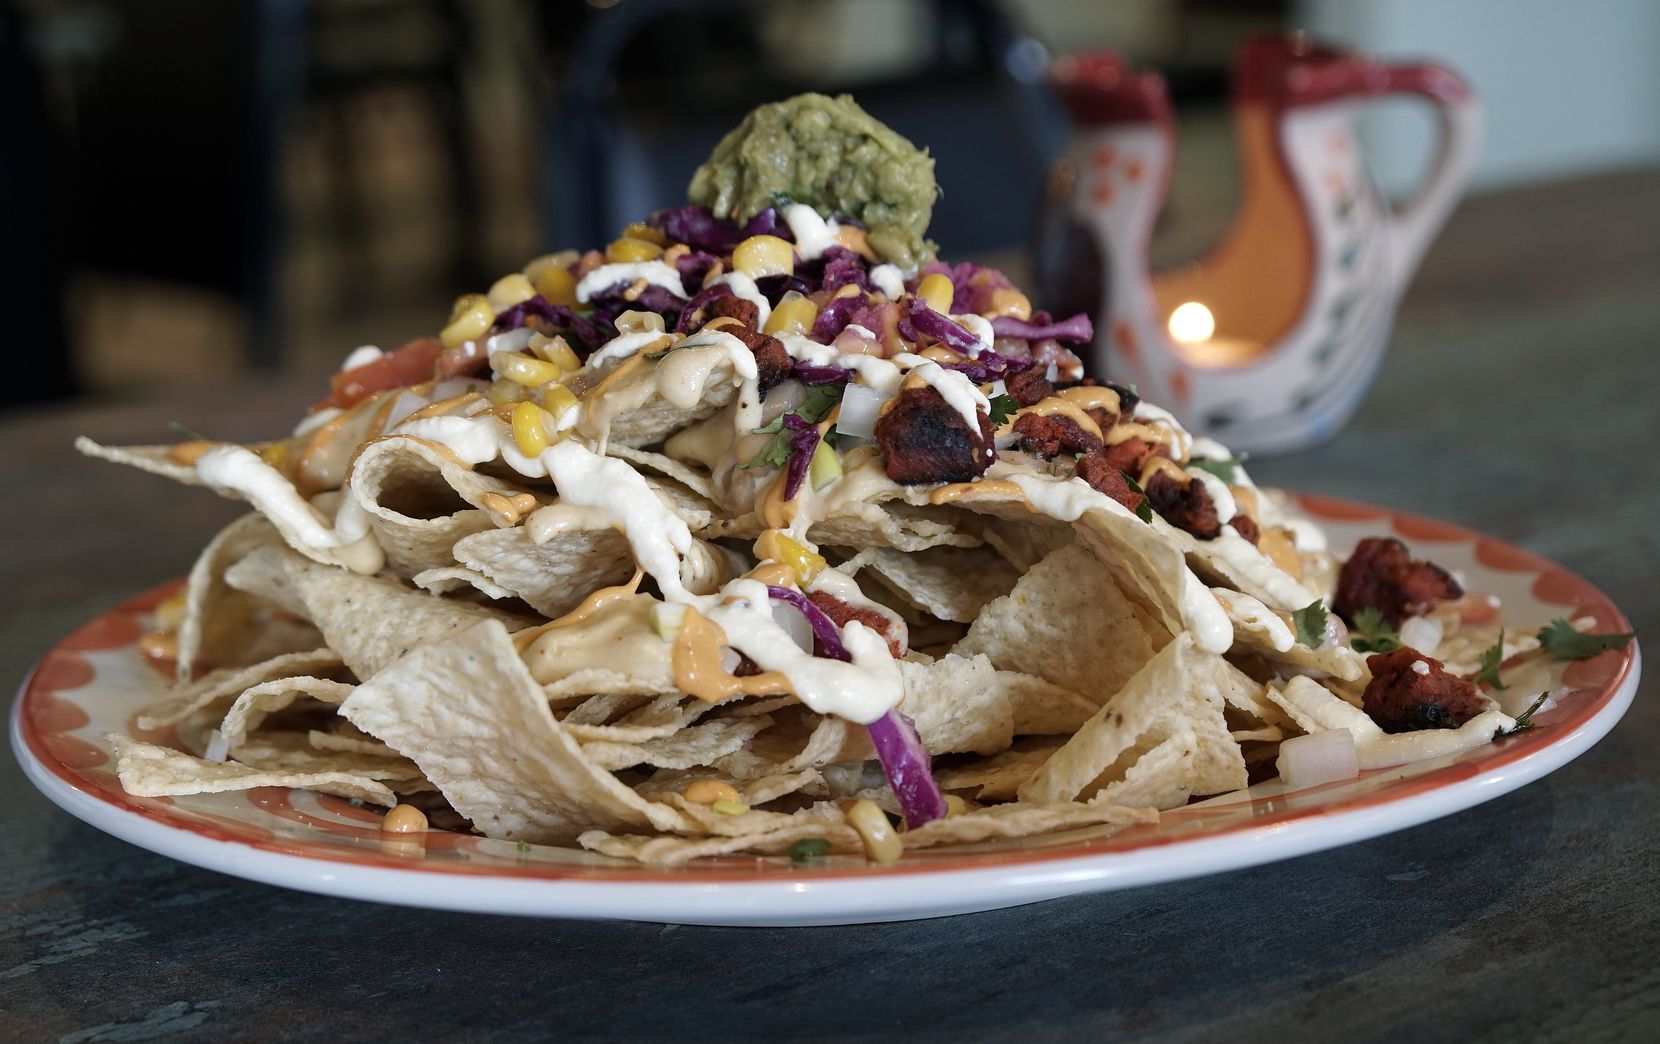 The Grande Nachos are a popular item on the menu at Mariachi's Dine In in Fort Worth.